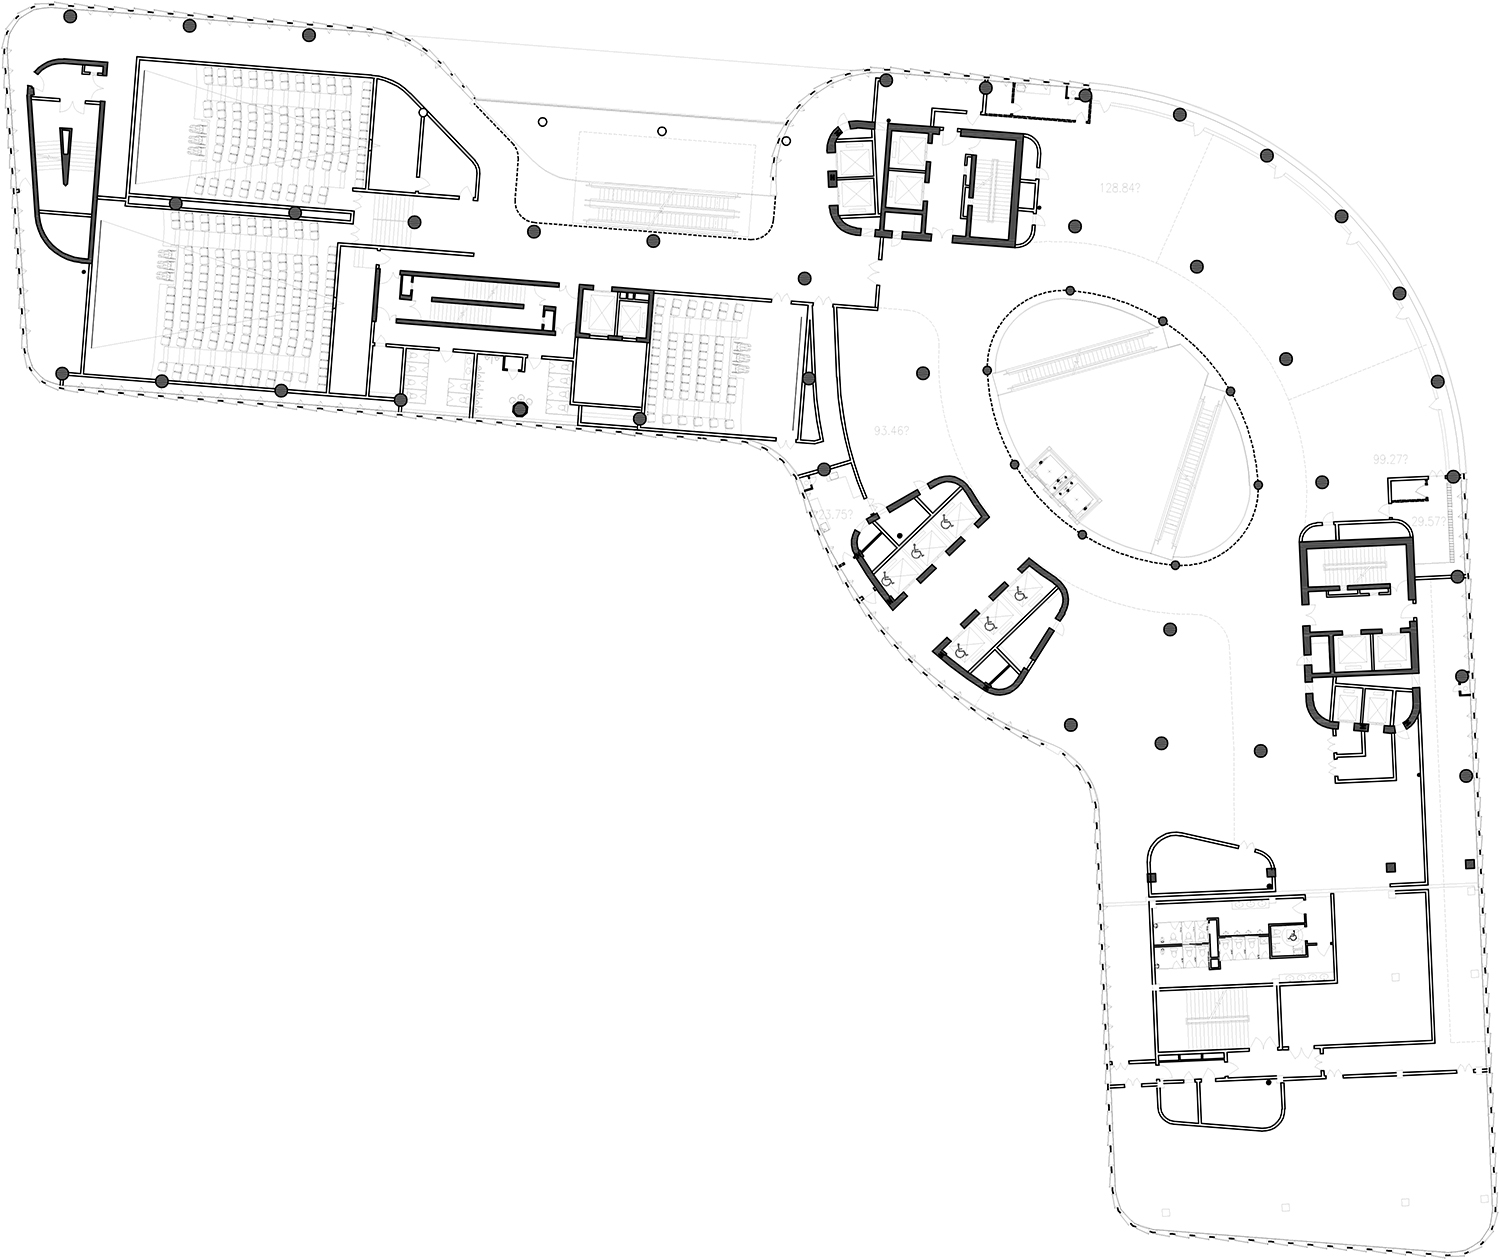 8th Floor plan The Architectural Design & Research Institute of Zhejiang University; Architects von Gerkan, Marg and Partners (gmp)}